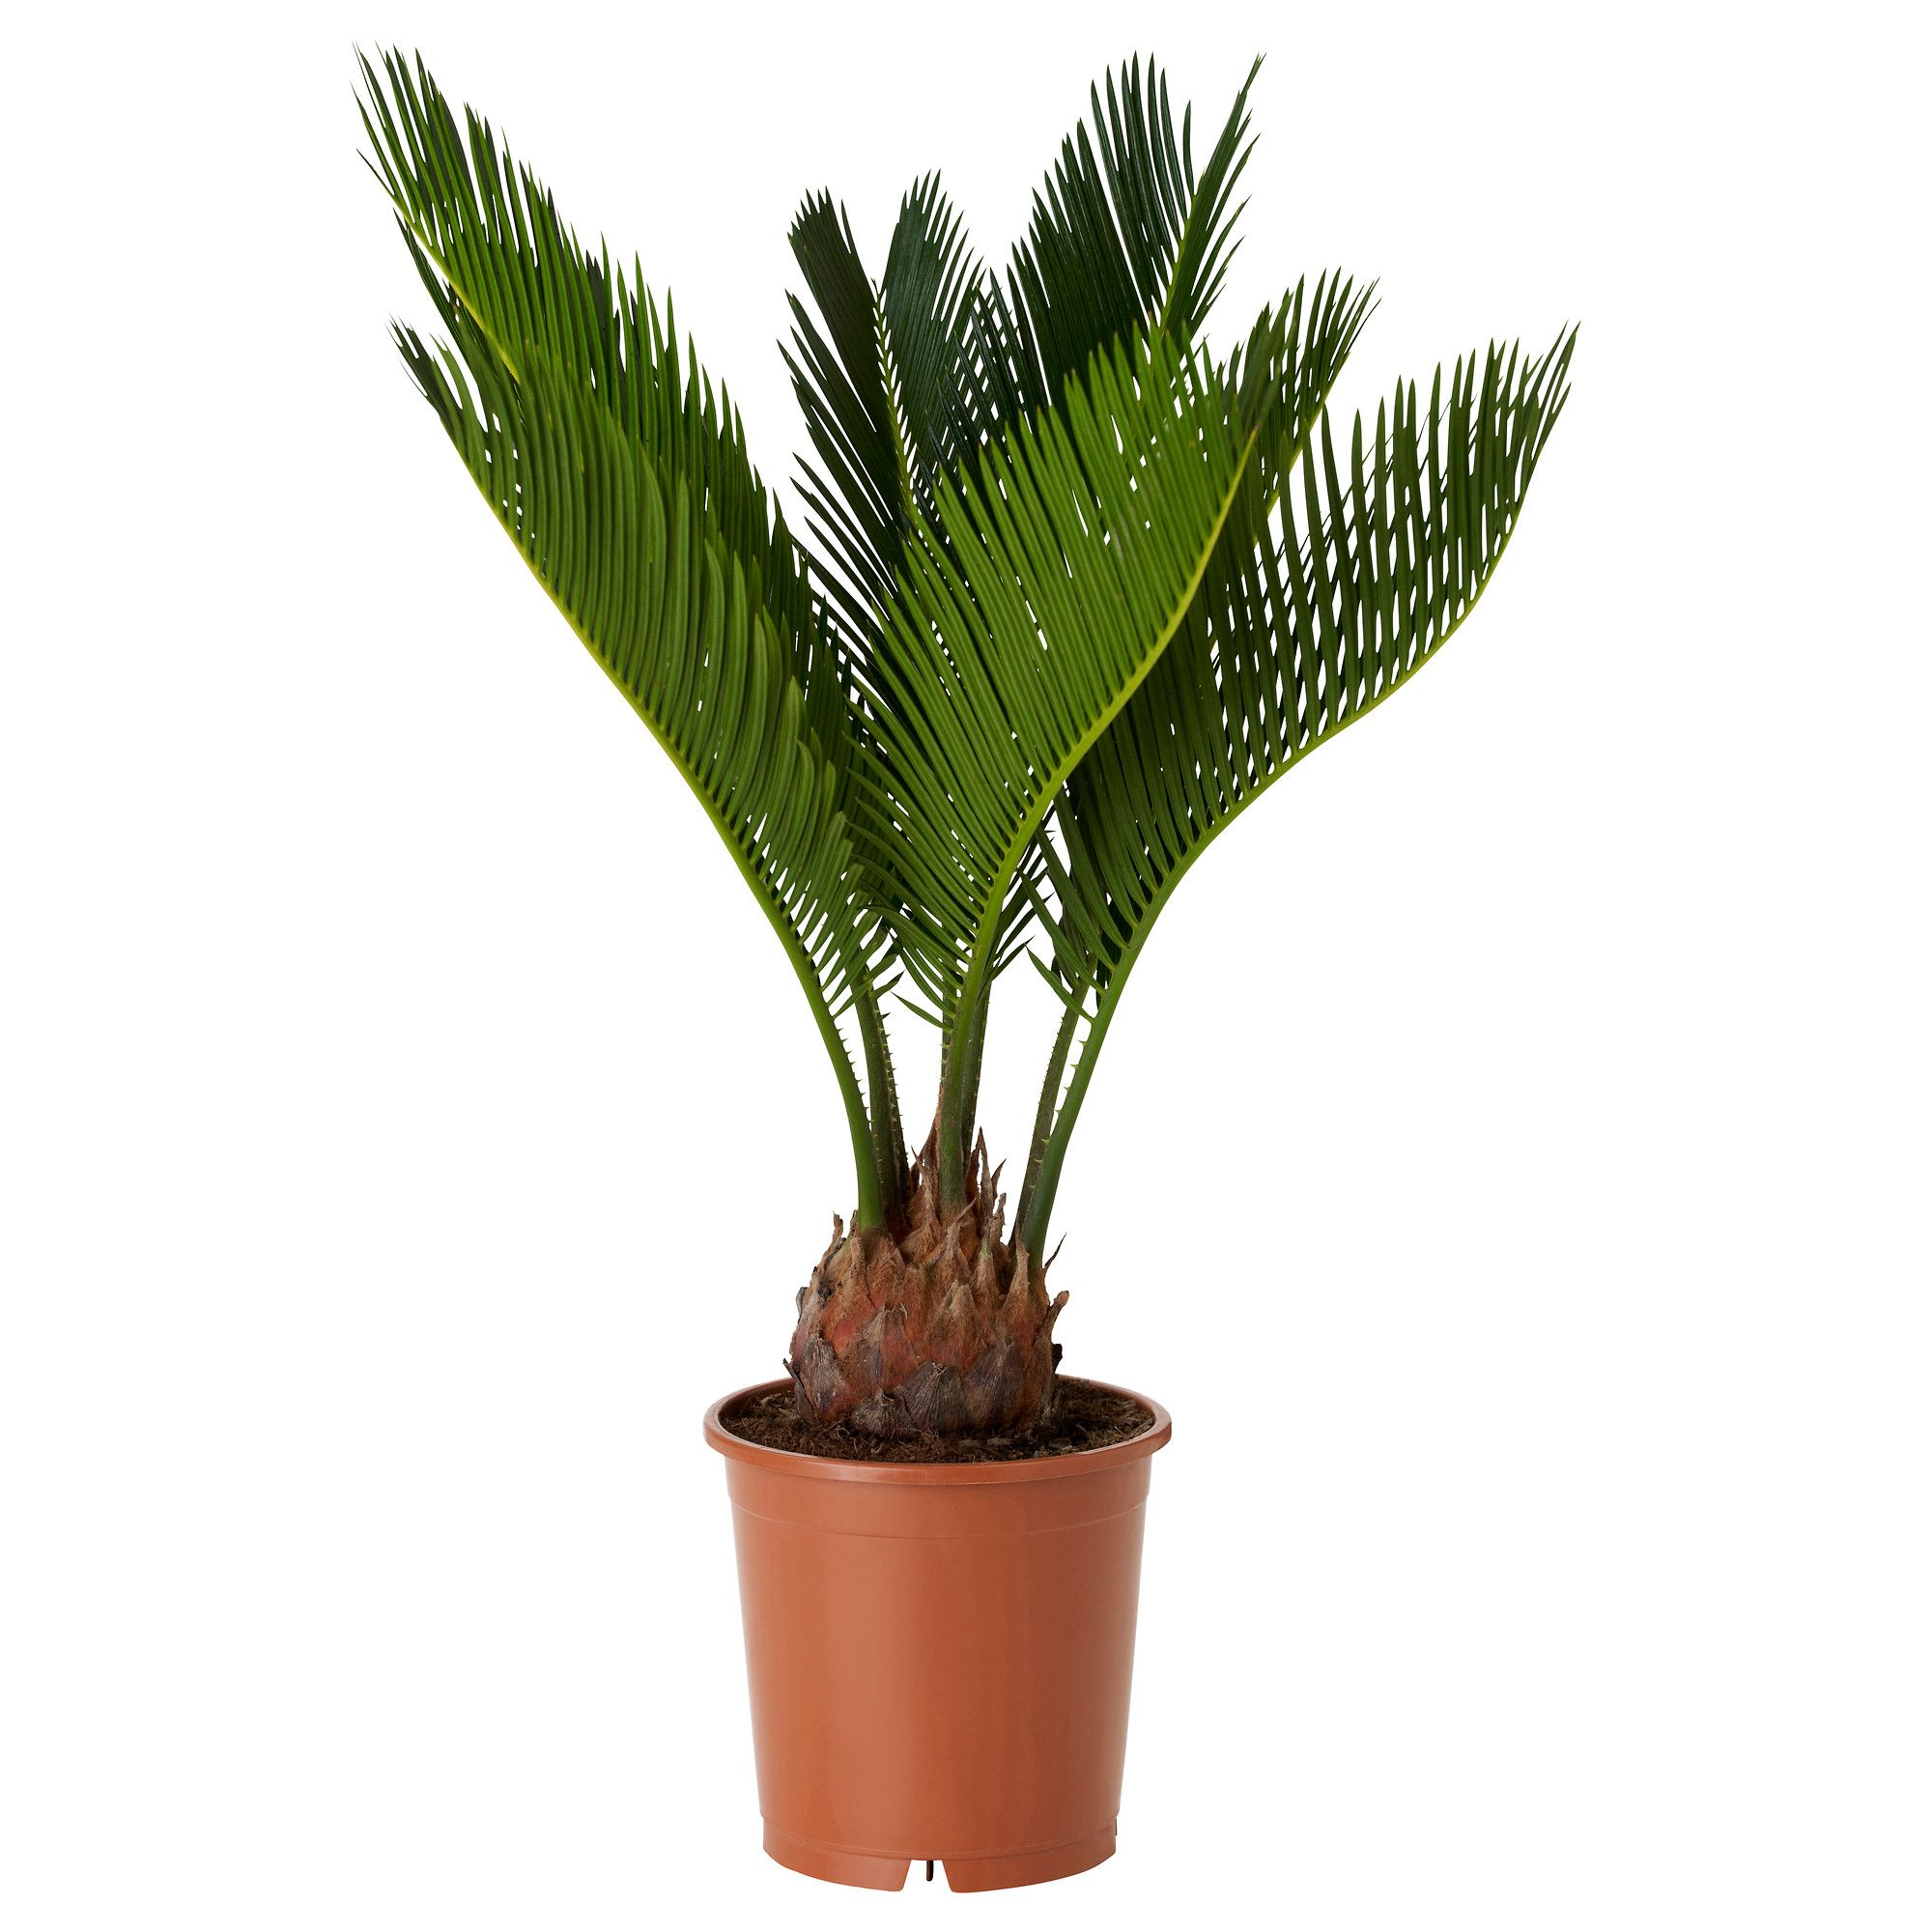 cycas revoluta potted plant ikea cycas palm. Black Bedroom Furniture Sets. Home Design Ideas